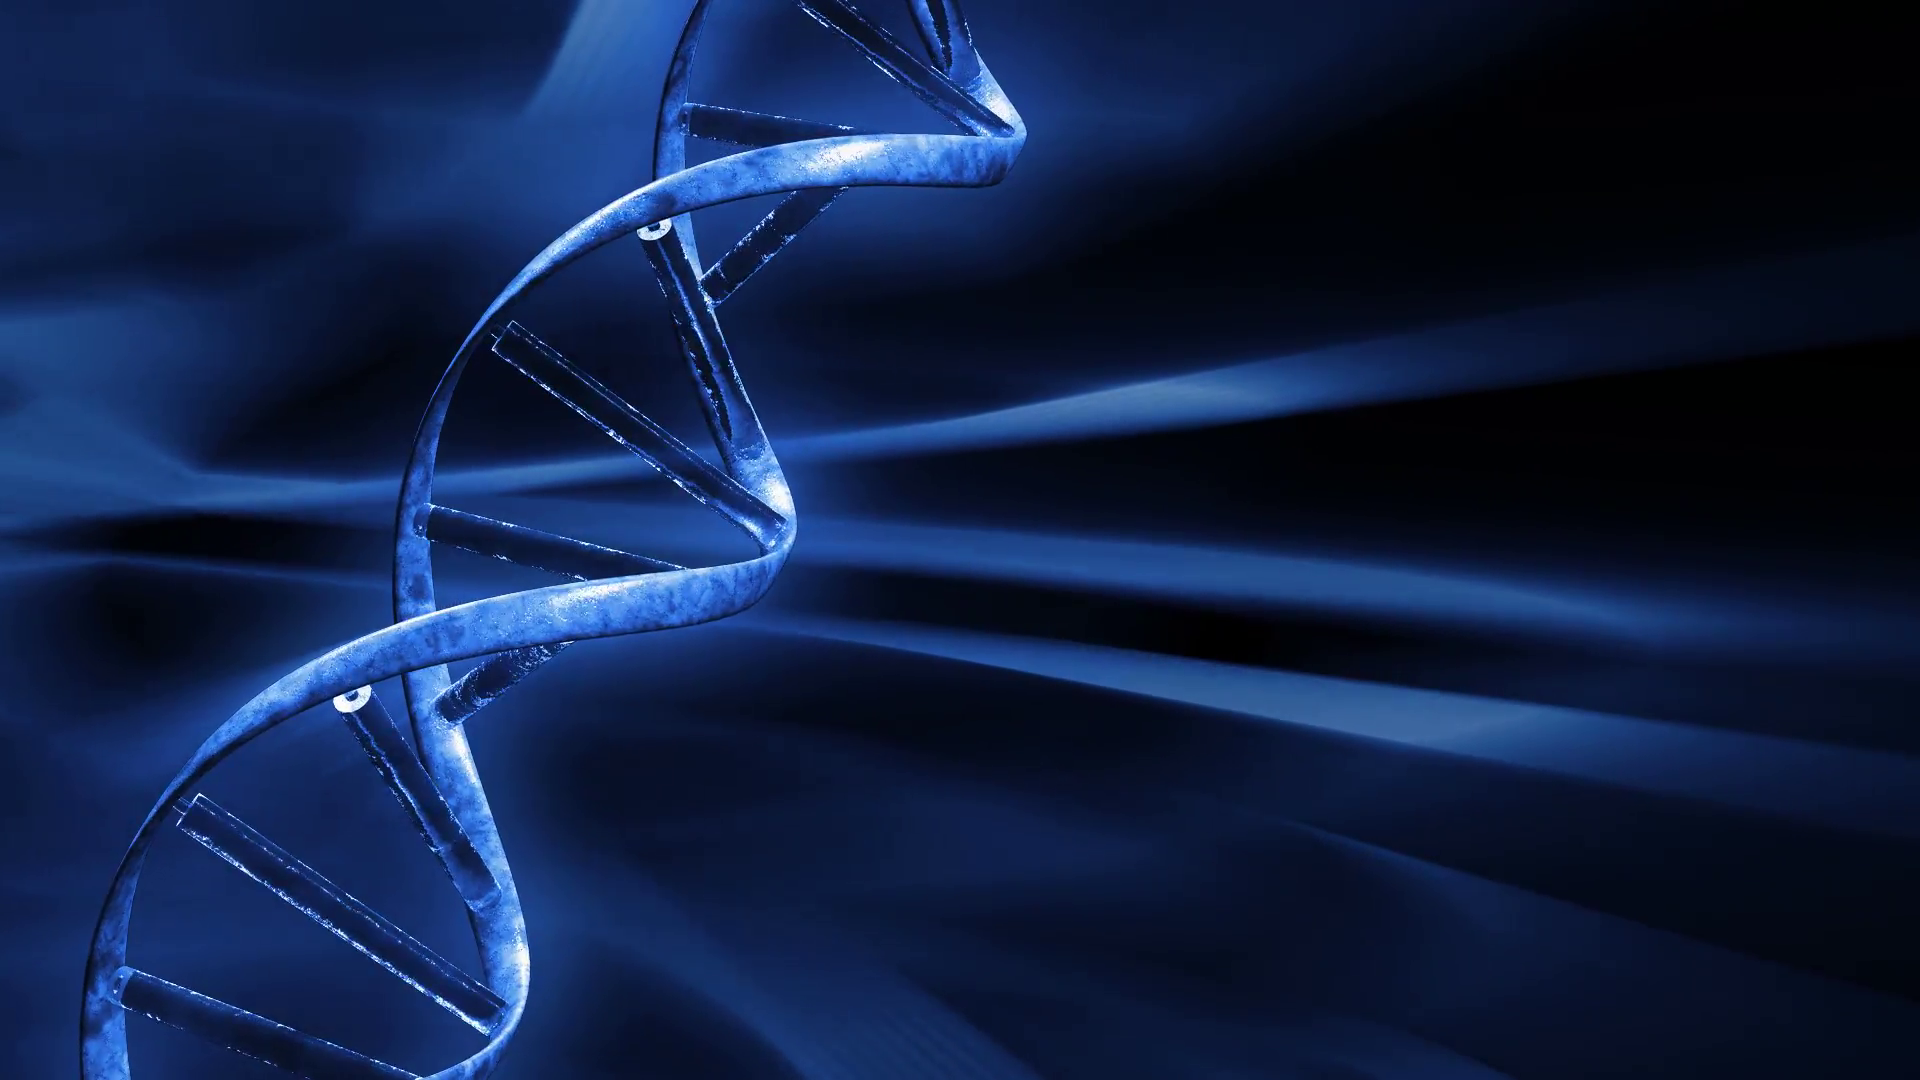 Blue FX Background with rotating DNA string,seamless loop Motion ...